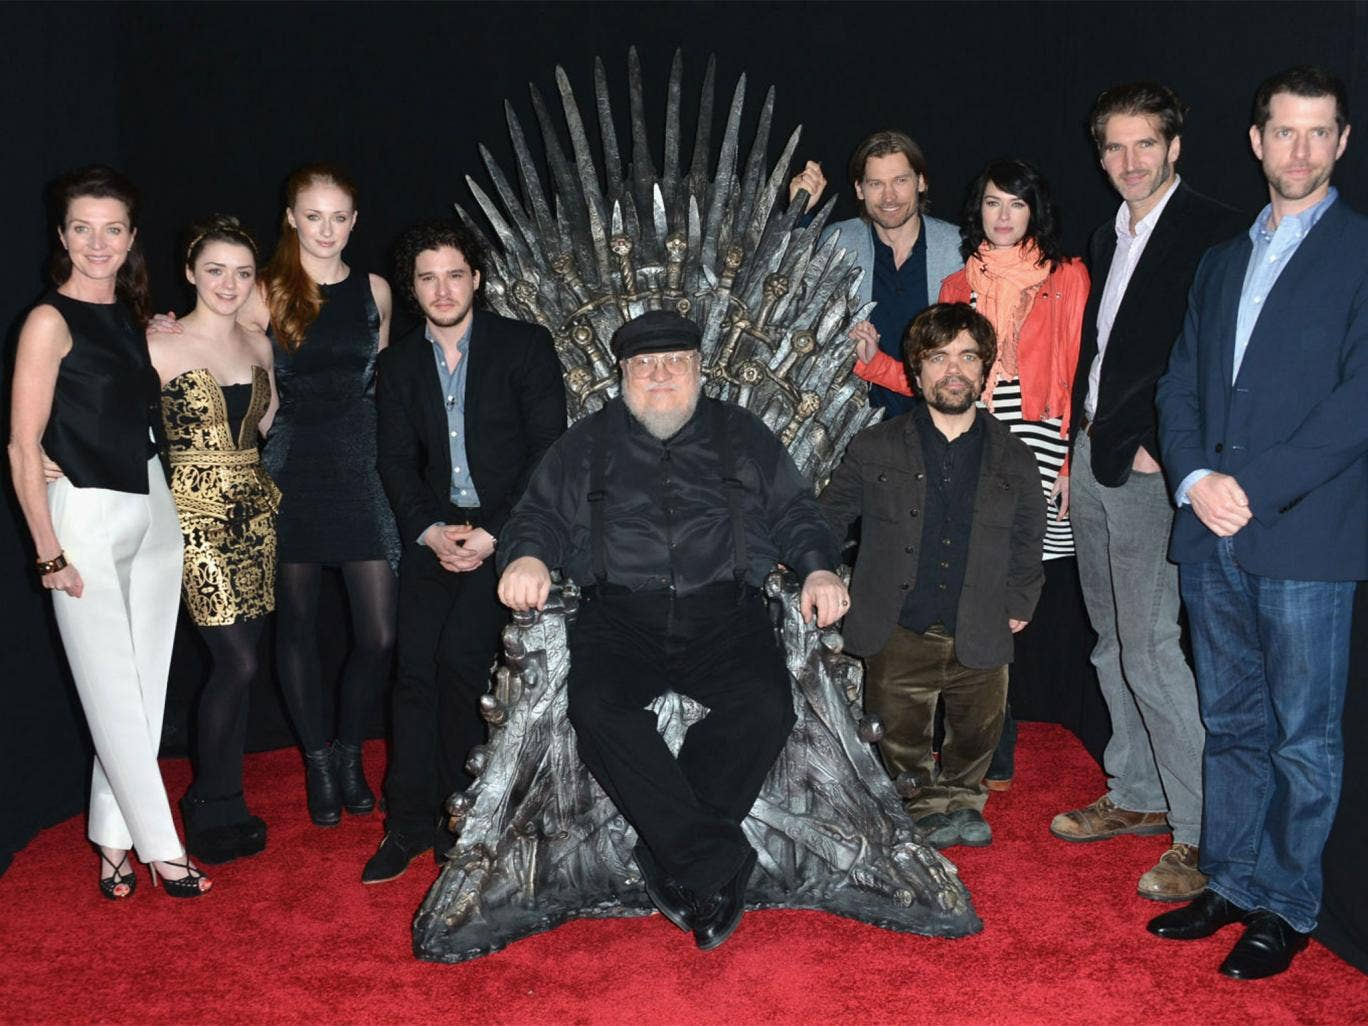 Game of Thrones' Book 6 Release Date: 'Winds of Winter' Probably Done ...